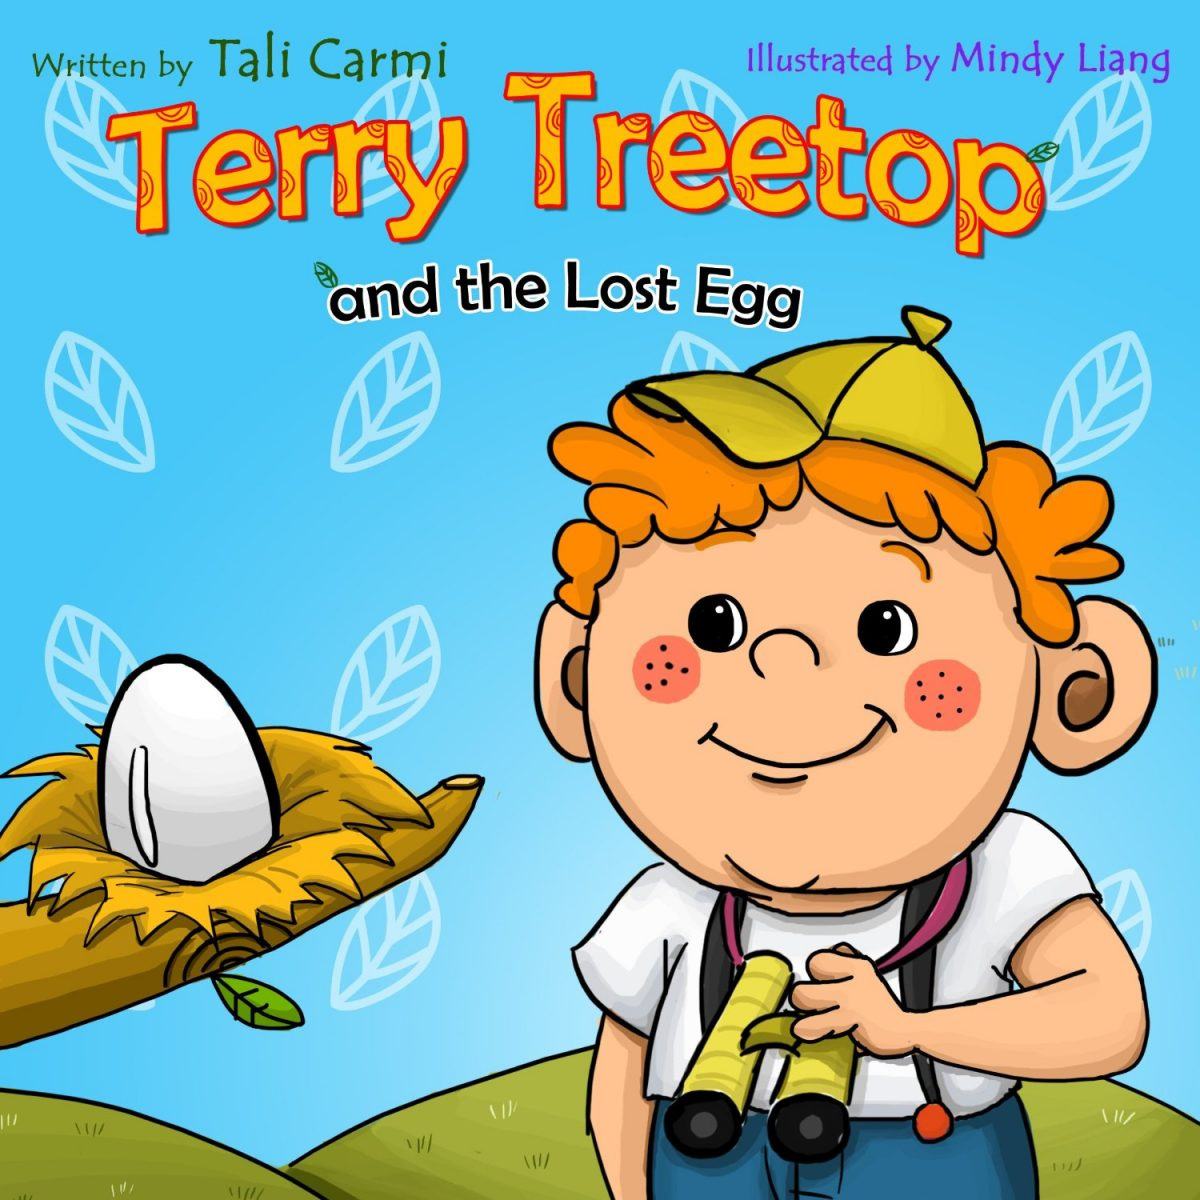 Book review: Terry Treetop and the Lost Egg